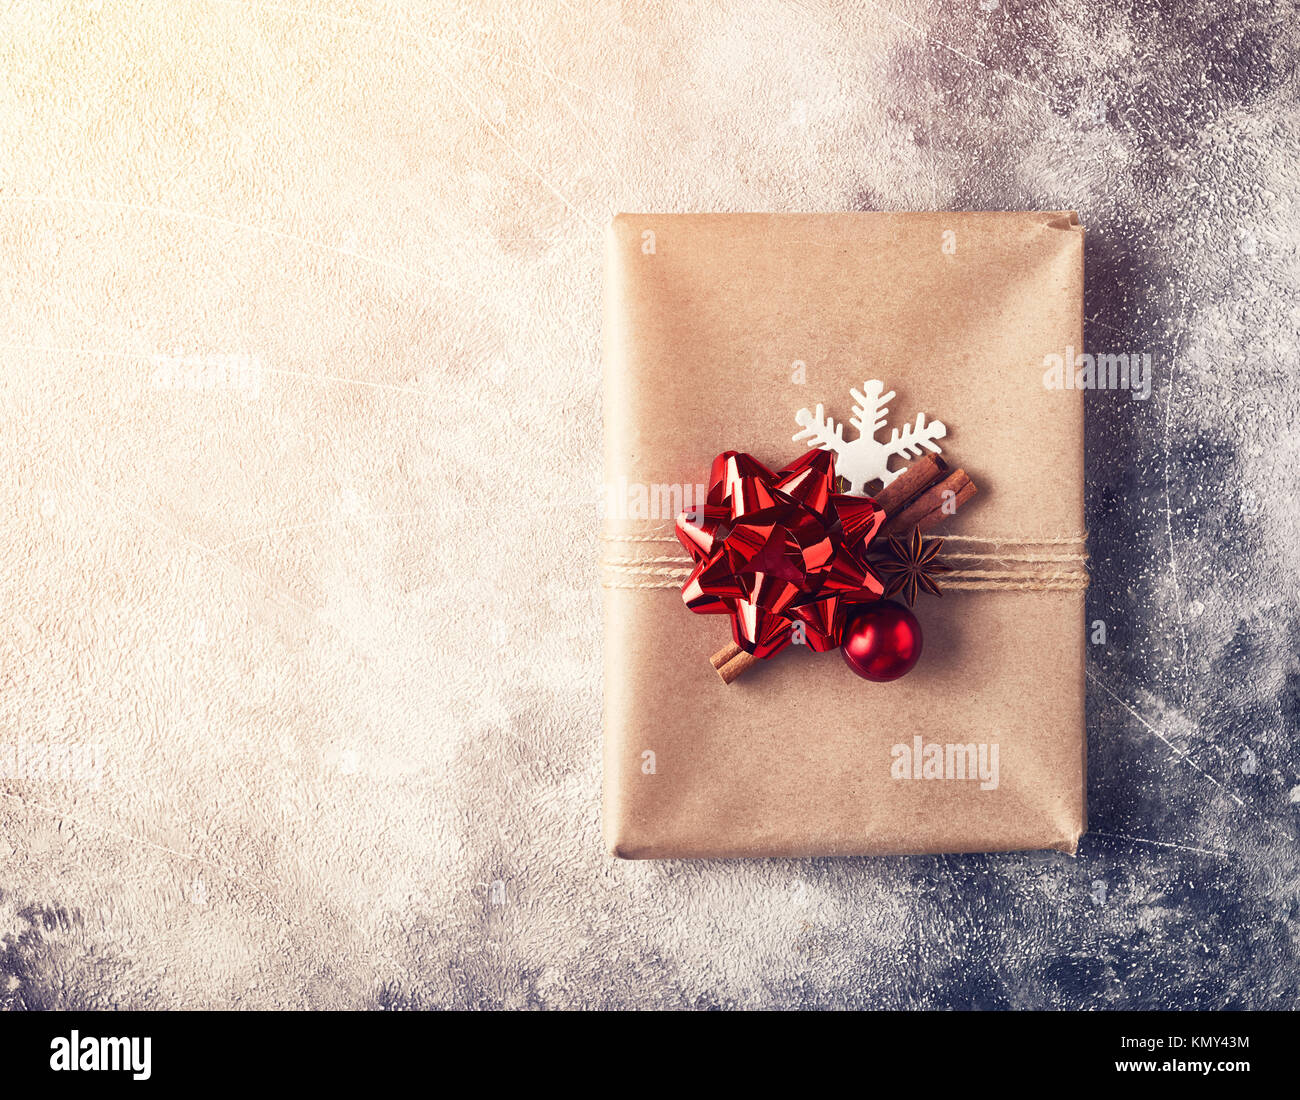 Wrapped present with red bow on textured winter background - Stock Image